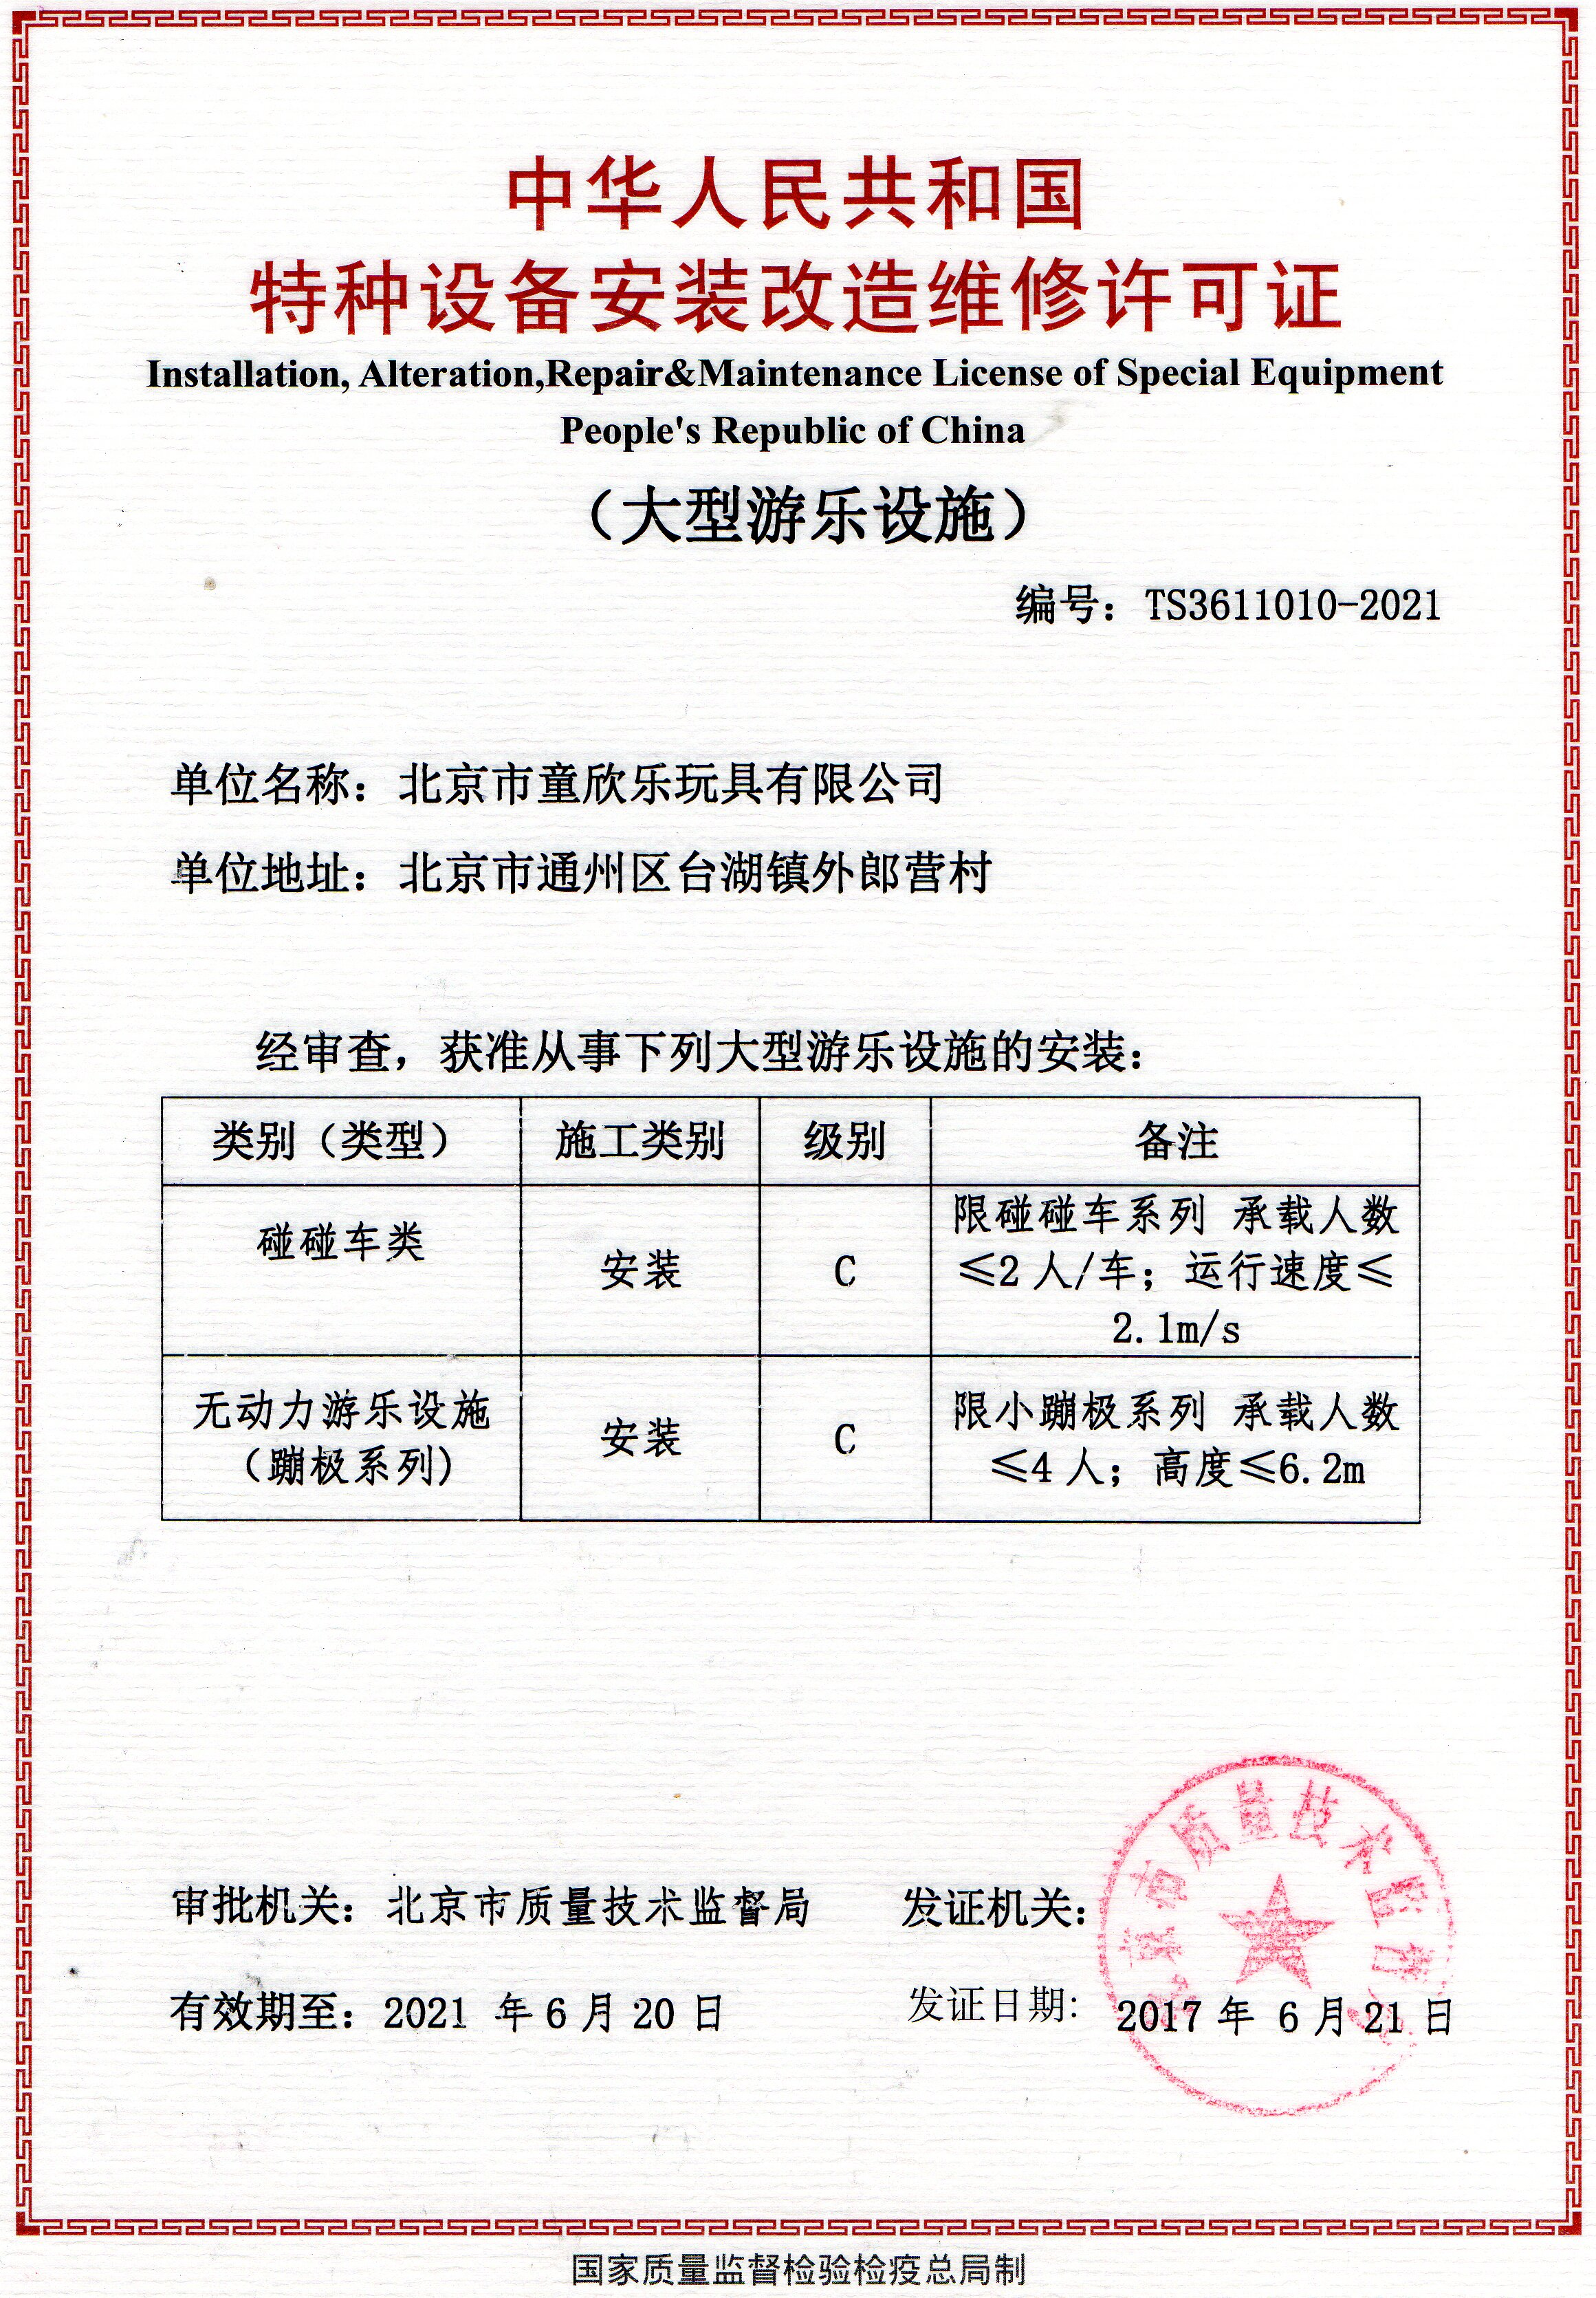 Repair & Maintenance License of Special Equipment